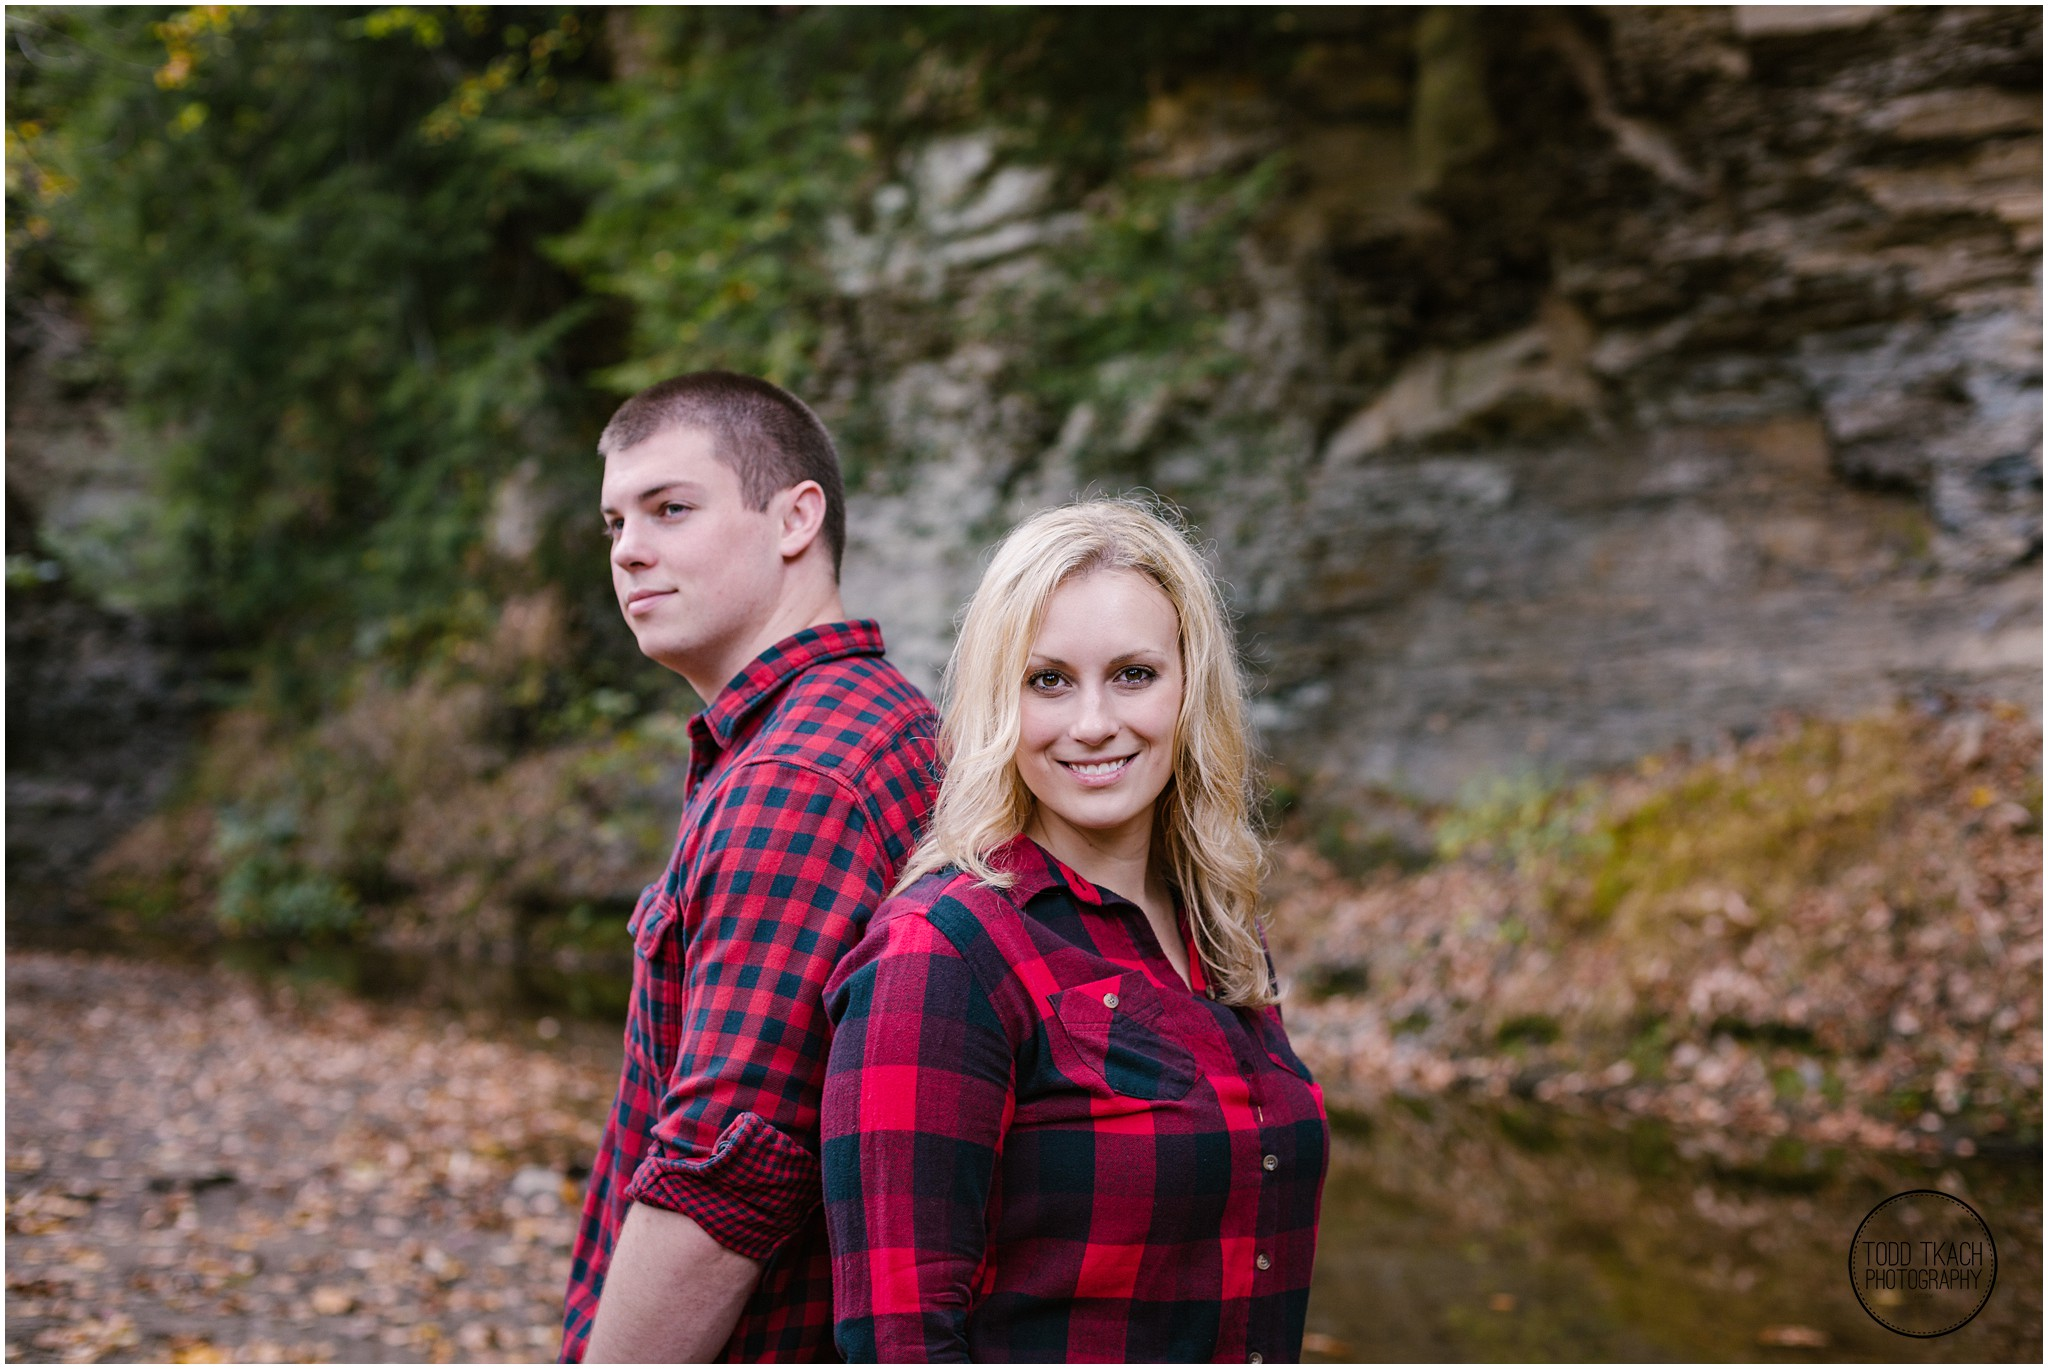 Christie & Scott - Rock Wall Portrait